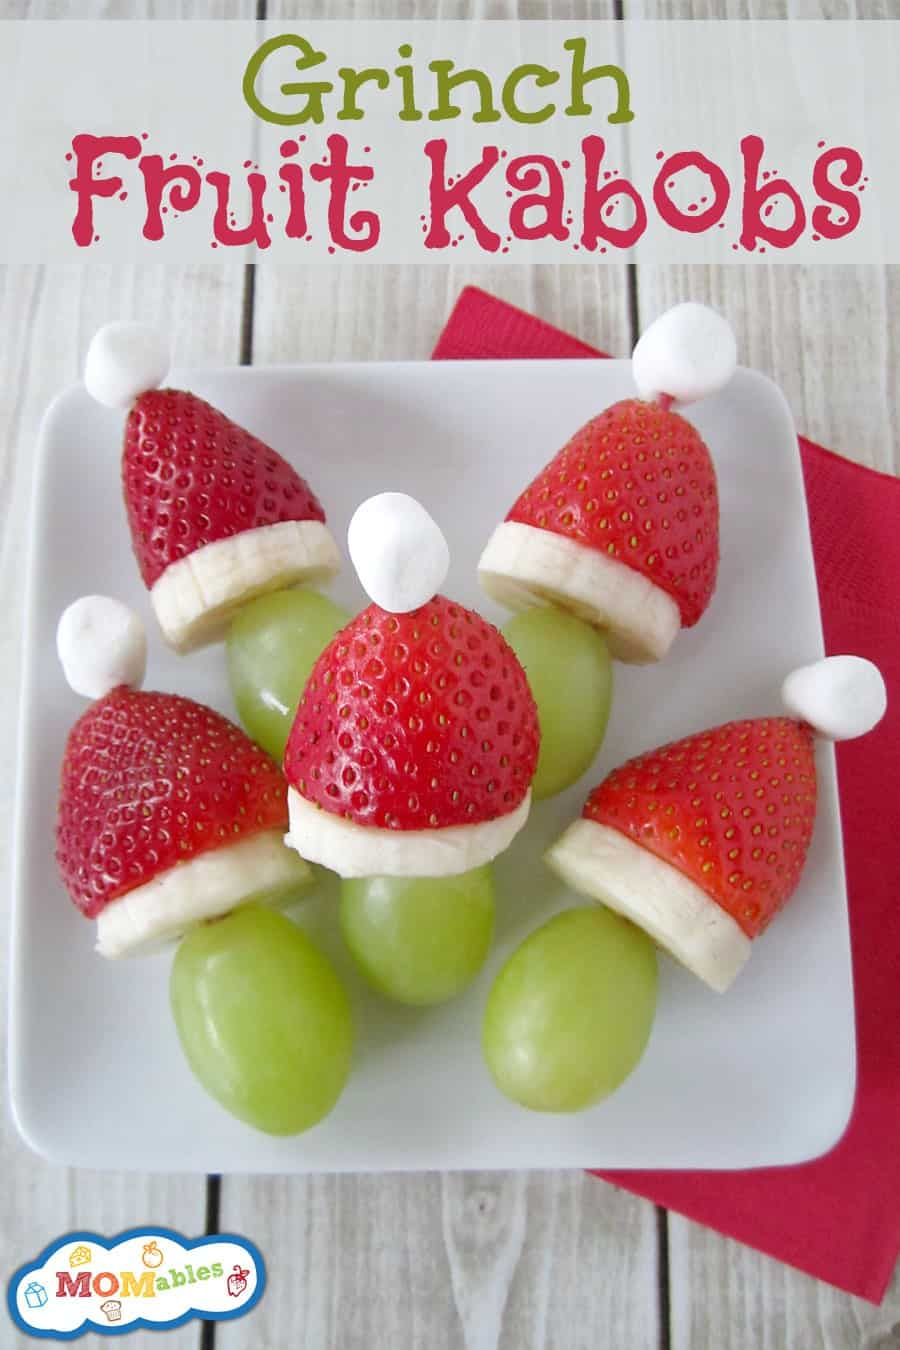 Fruit kabobs with green grapes, sliced banana, a strawberry, and topped with a mini marshmallow.